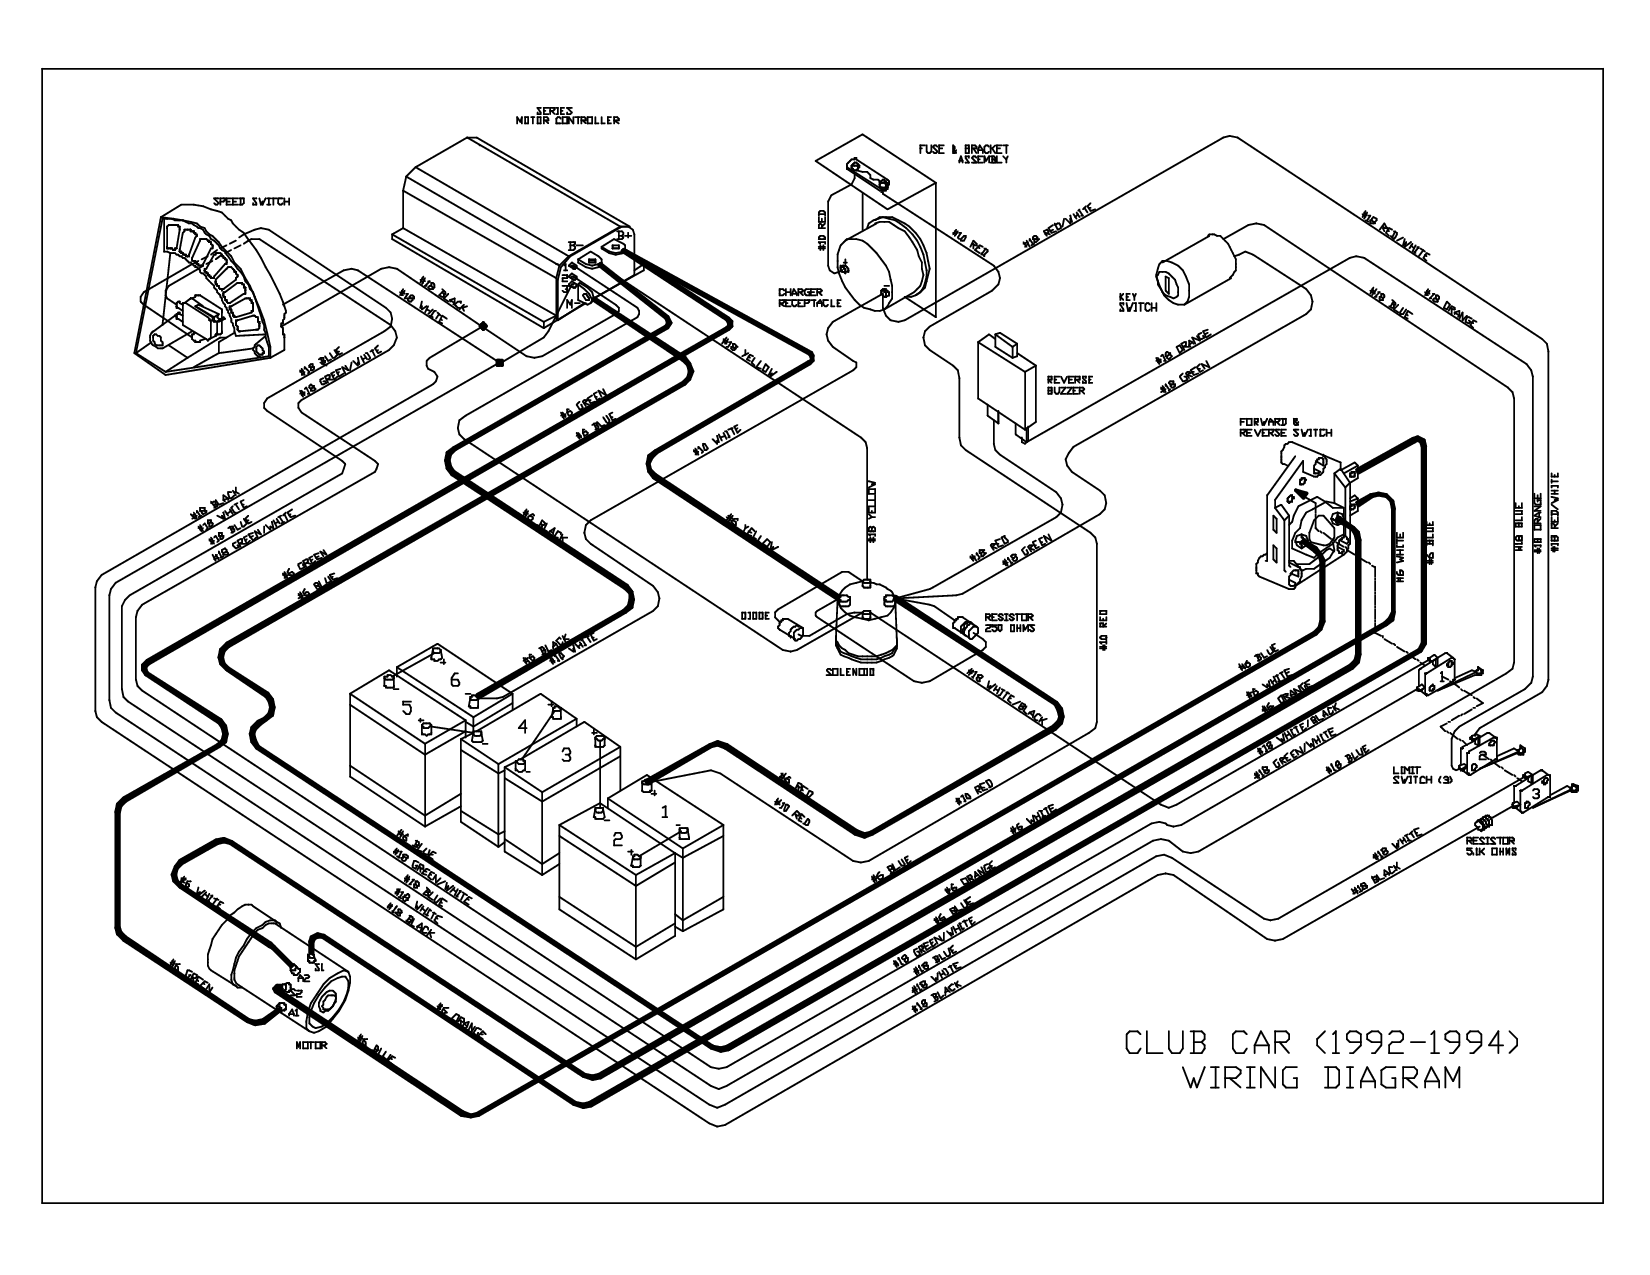 1996 Club Car Wiring Diagram Gas | Wiring DiagramWiring Diagram - AutoScout24